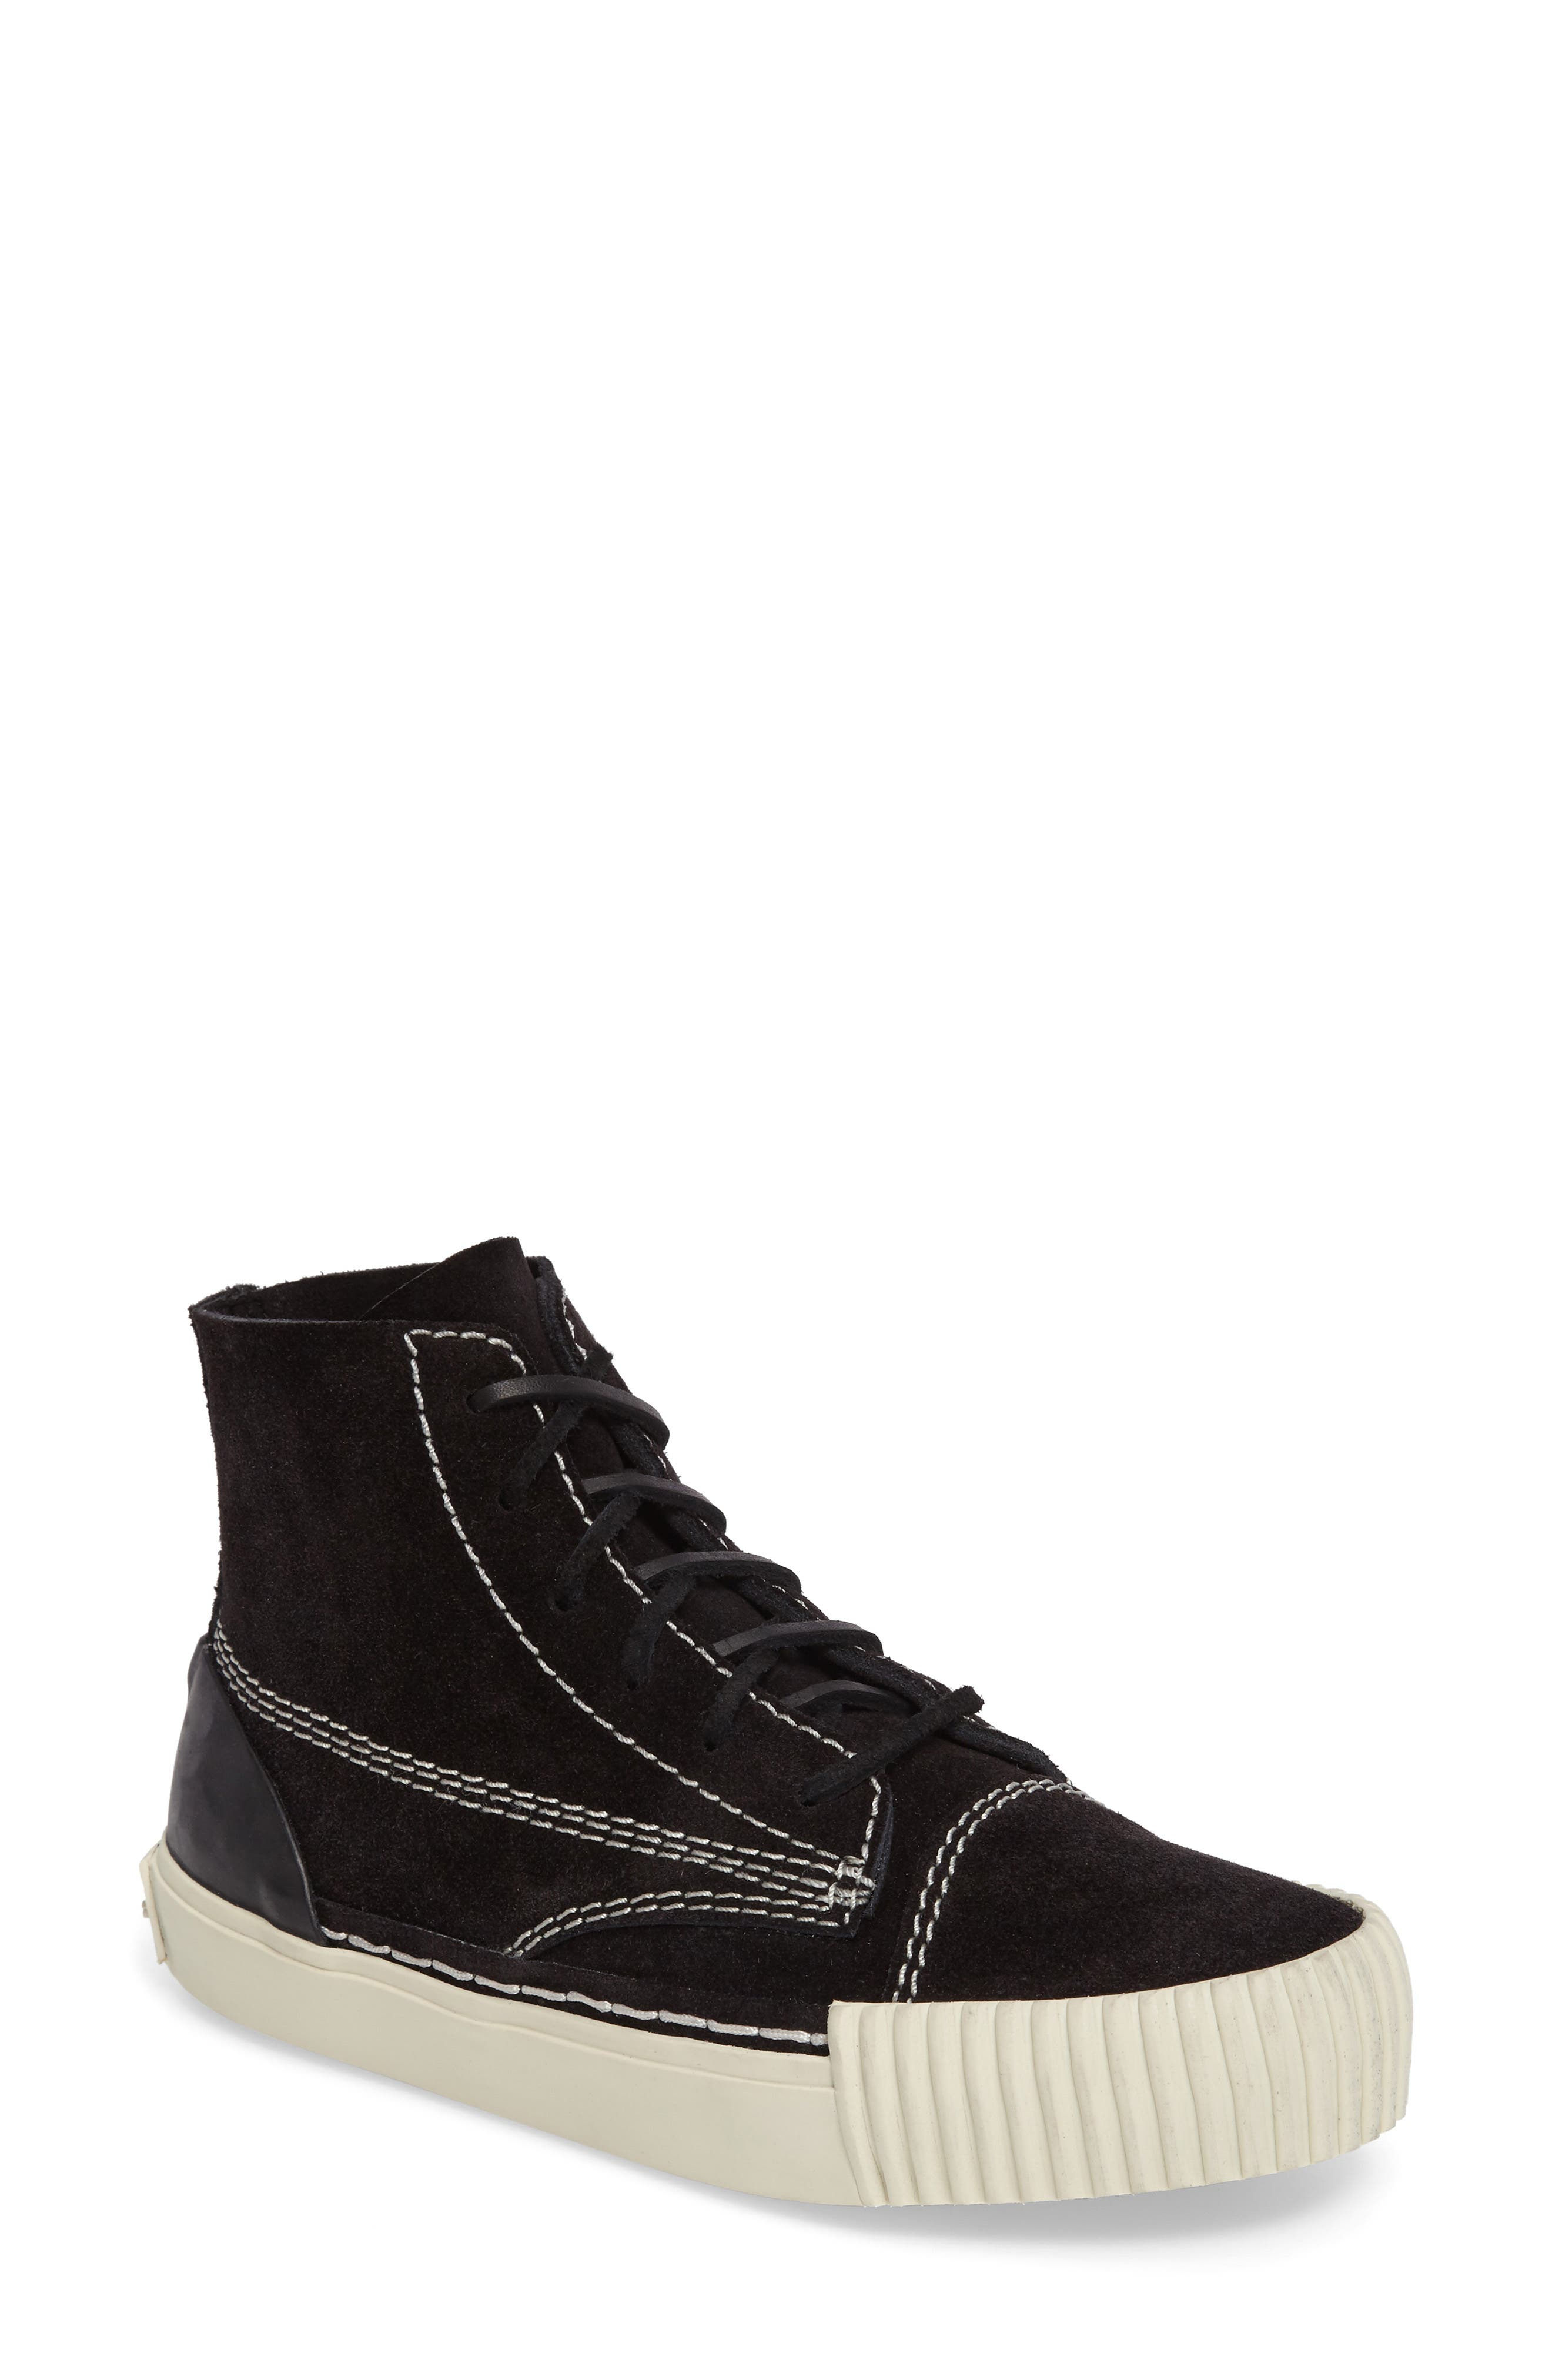 'Perry' Suede High Top Sneaker,                             Main thumbnail 1, color,                             001